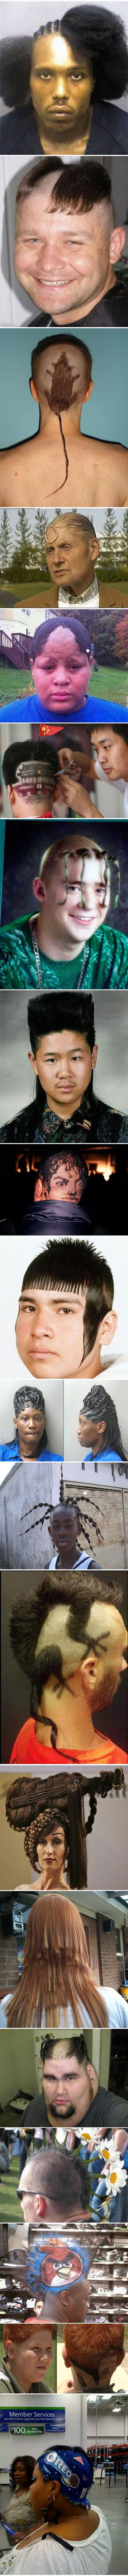 The Absolute Worst Hairstyles (20 Pics) - Abusement Park Nation